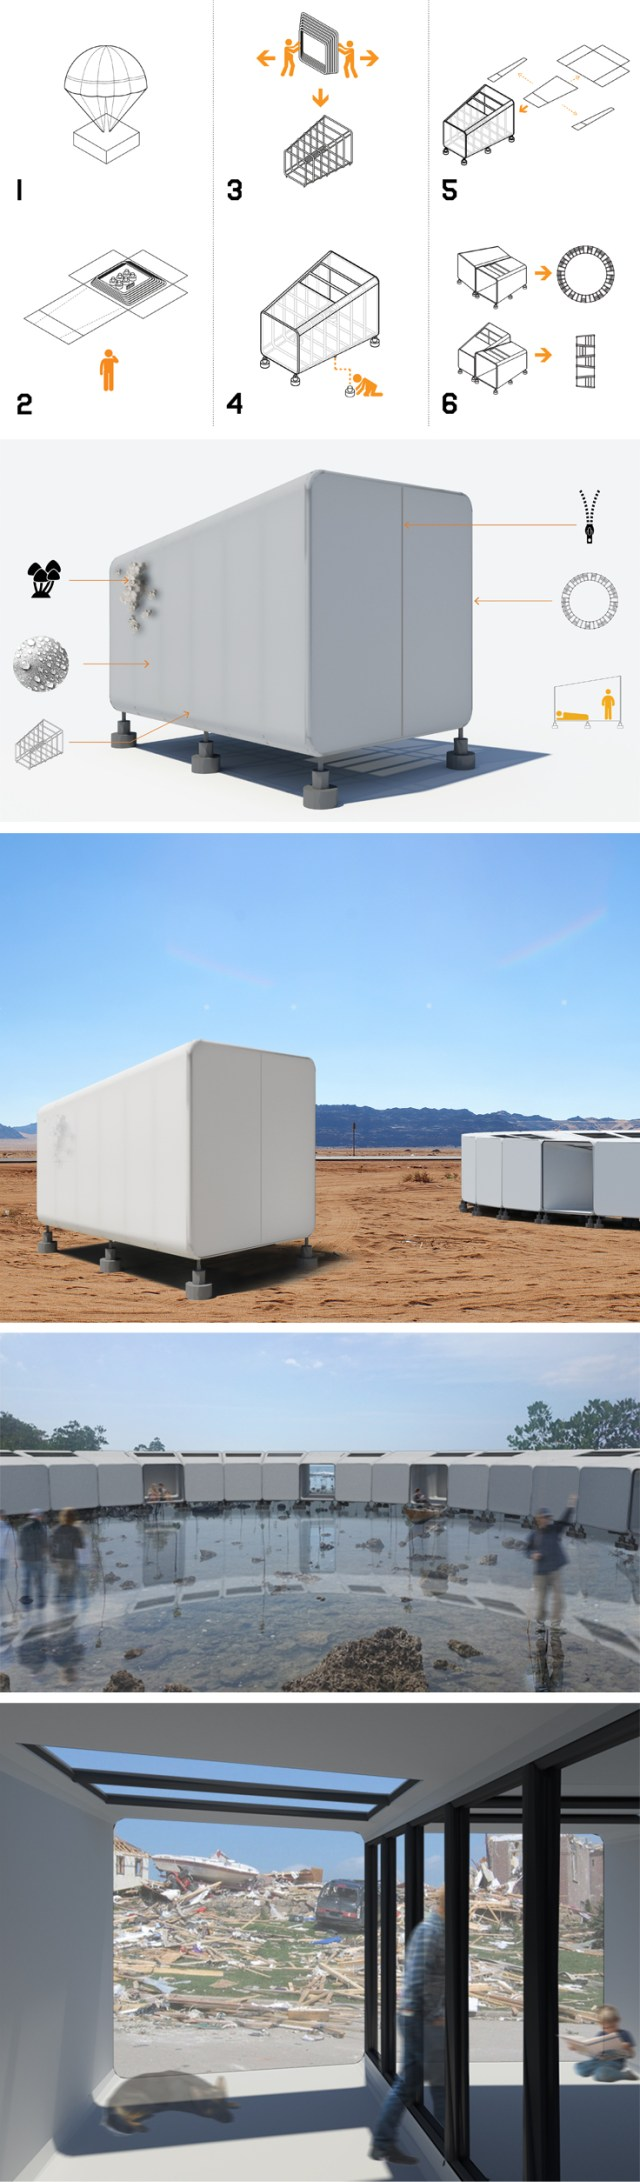 A temporary shelter for displaced populations, Homeless YET Home POD is a lightweight, modular, easily assembled, easily transported, temporary shelter for displaced populations throughout the world. POD: HOMELESS YET HOME | Designer: MODlab (Eric Schwartzbach and Benjamin Ward) | Lexus Design Award 2017 | Milan Design Week | La Triennale di Milano | Awesome Products #product_design